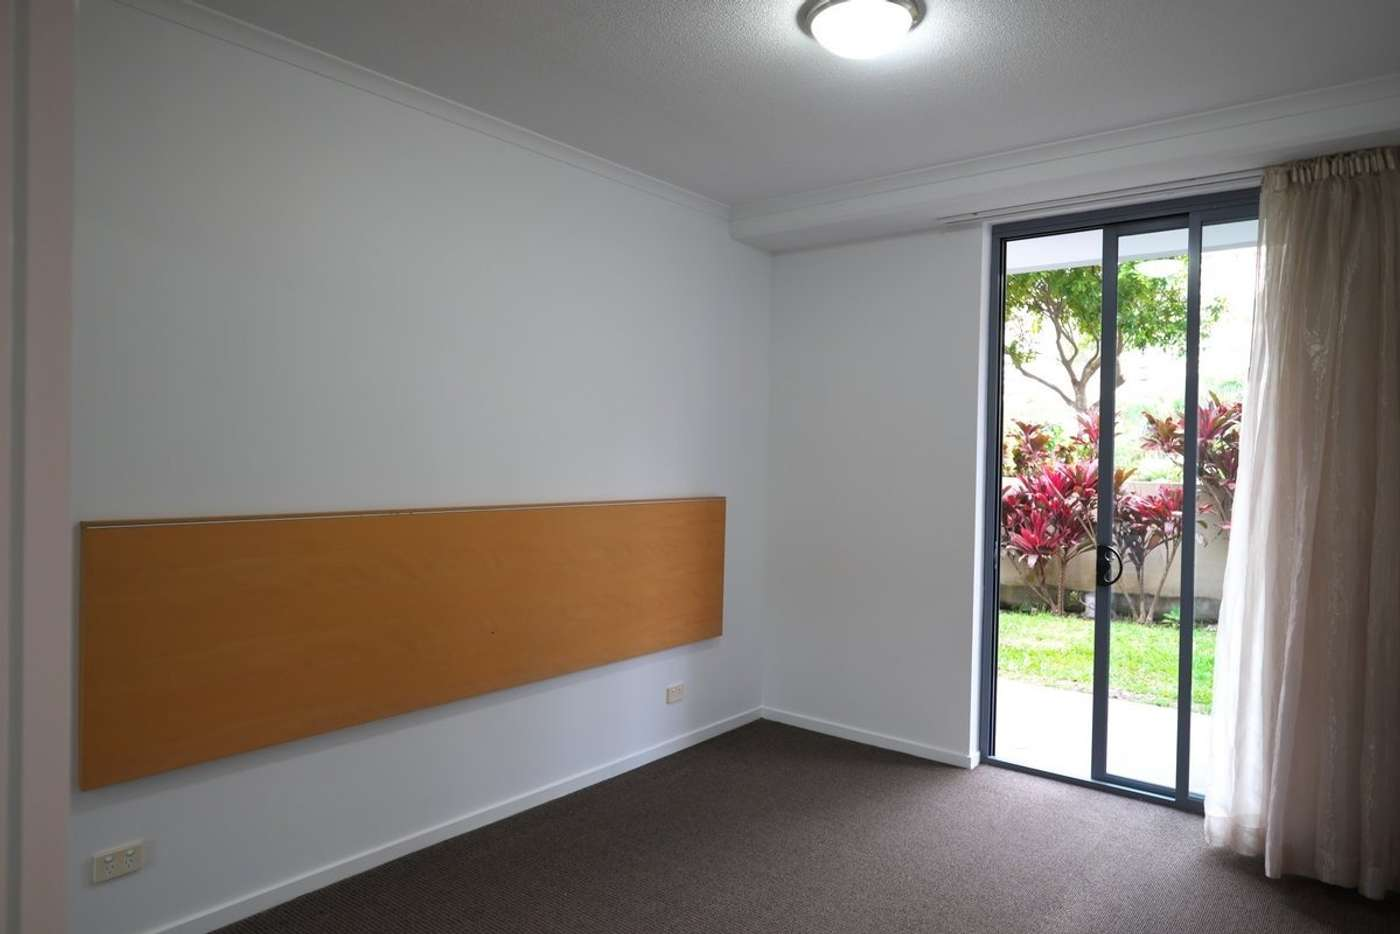 Seventh view of Homely apartment listing, 2001/1 Ocean Street, Burleigh Heads QLD 4220